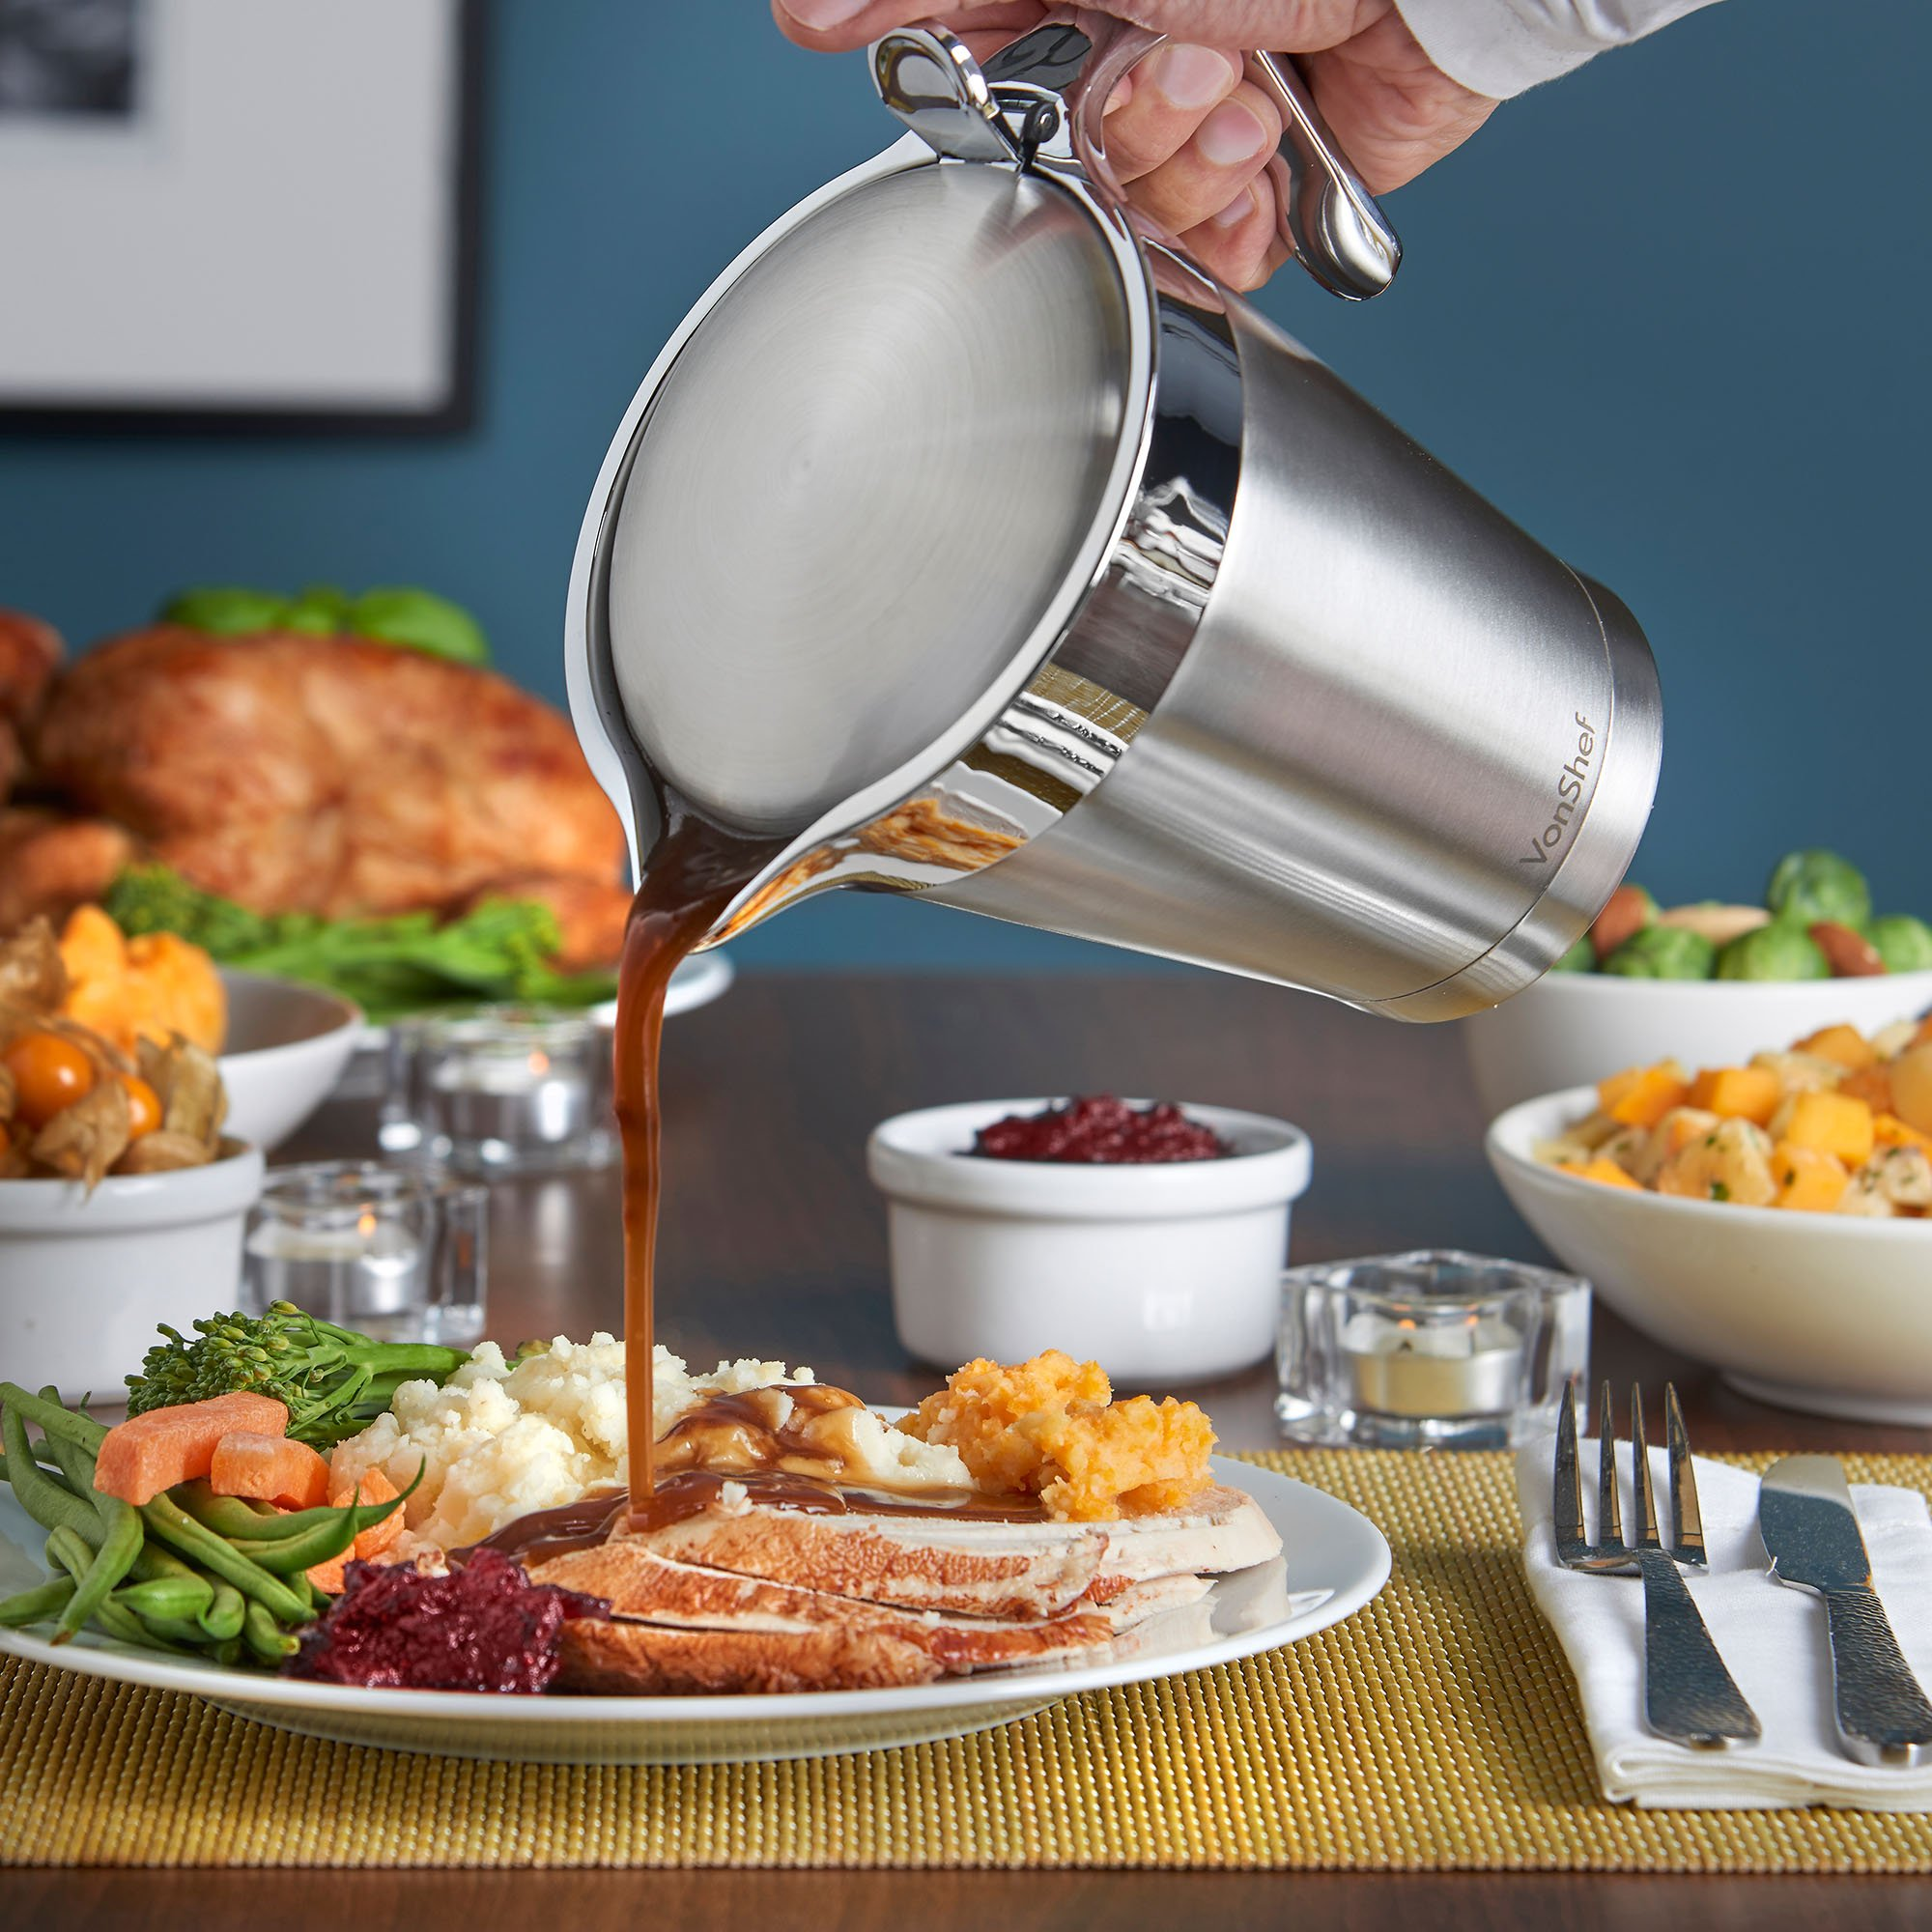 VonShef Stainless Steel 34oz Gravy Boat and Sauce Jug with Hinged Lid, Double Wall Insulated, Large 34 Fluid Ounces Capacity by VonShef (Image #2)